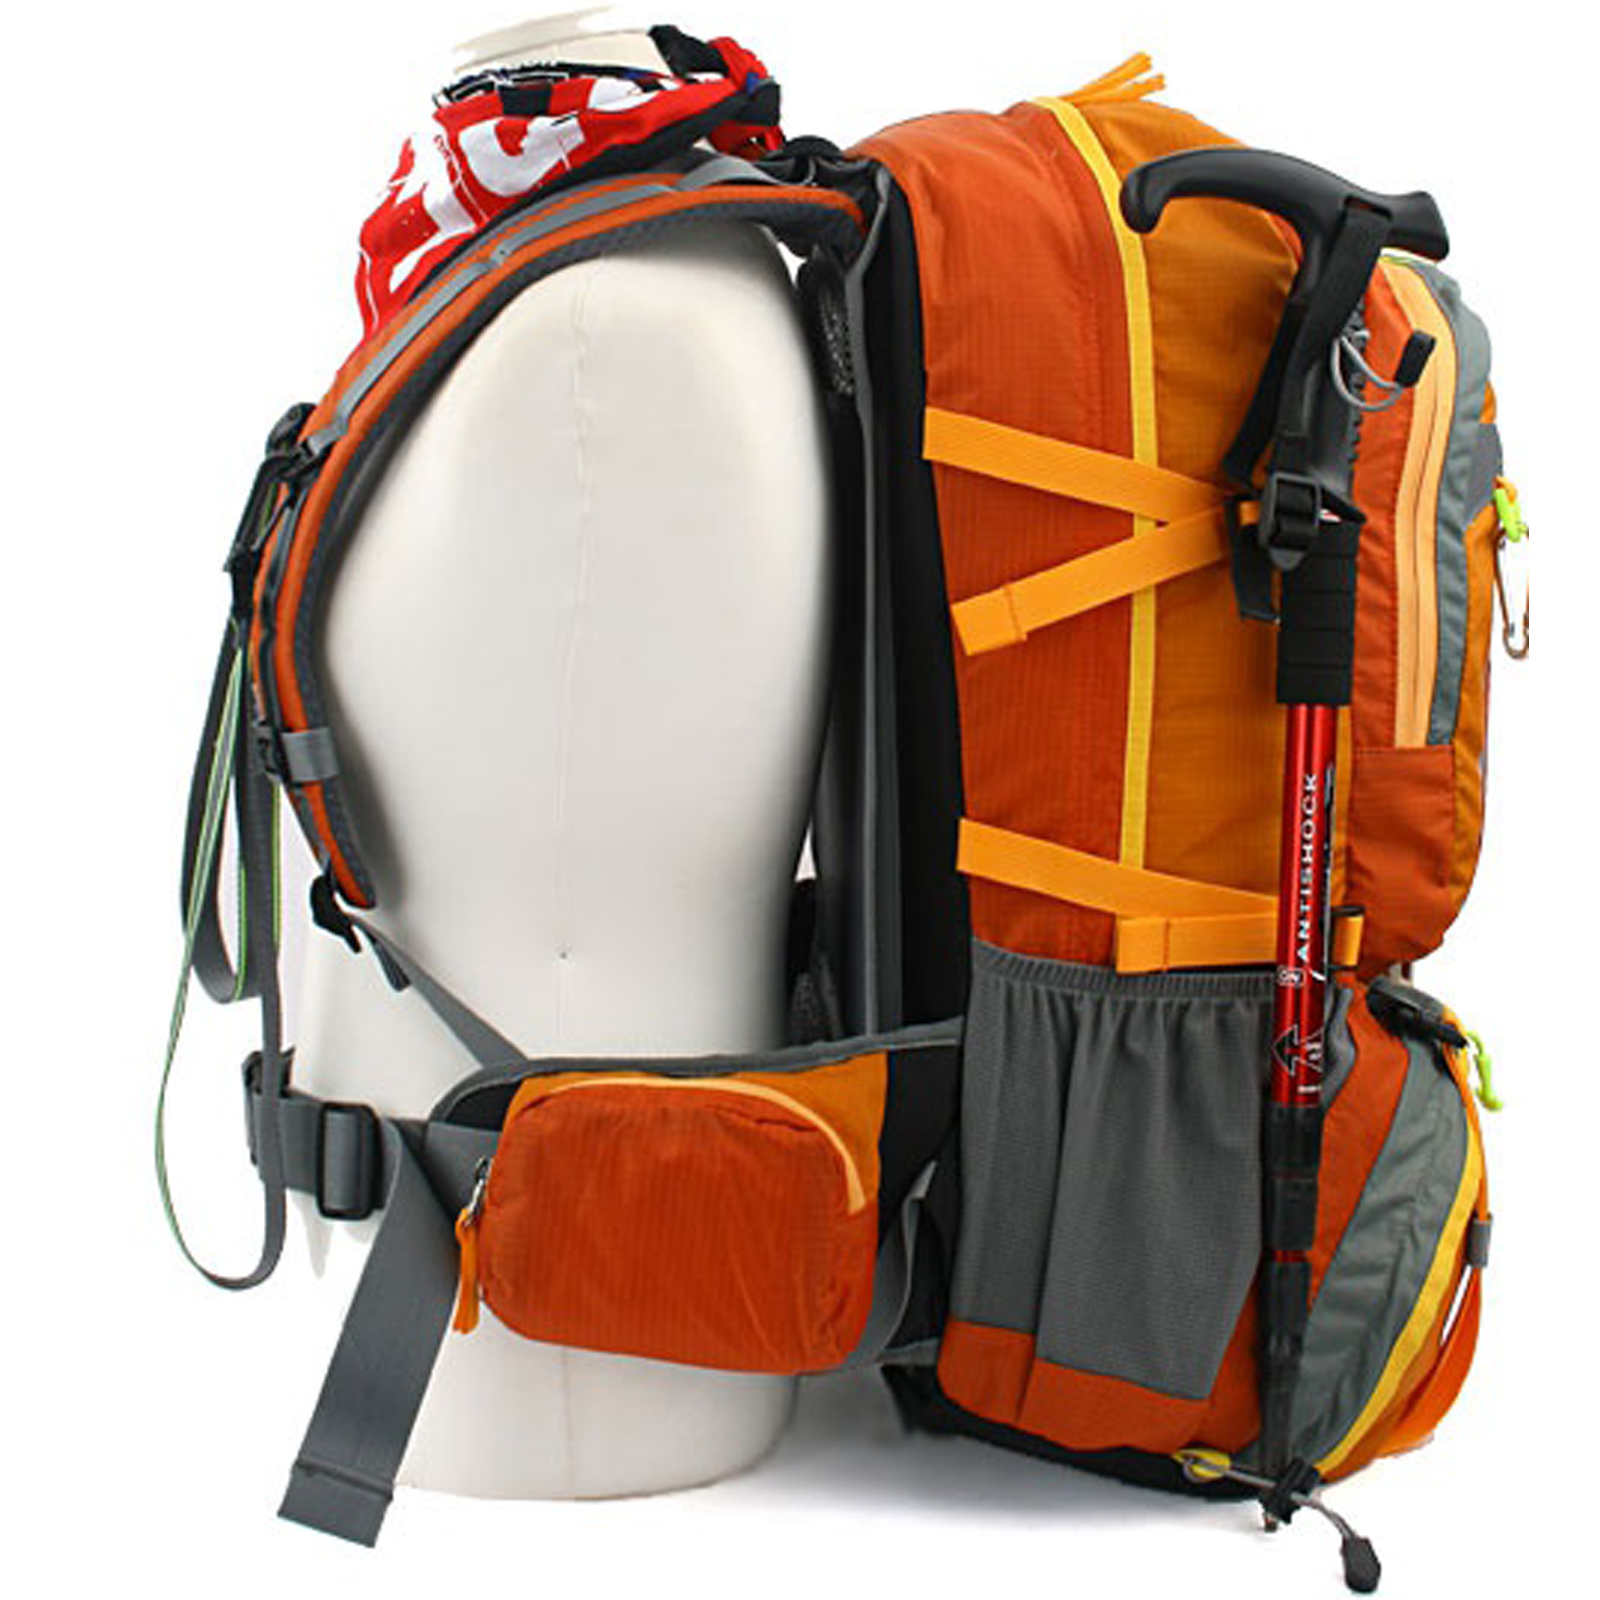 Camping Hiking Backpacking: 40L Backpacking Backpack Bag Rucksack Travel Hiking